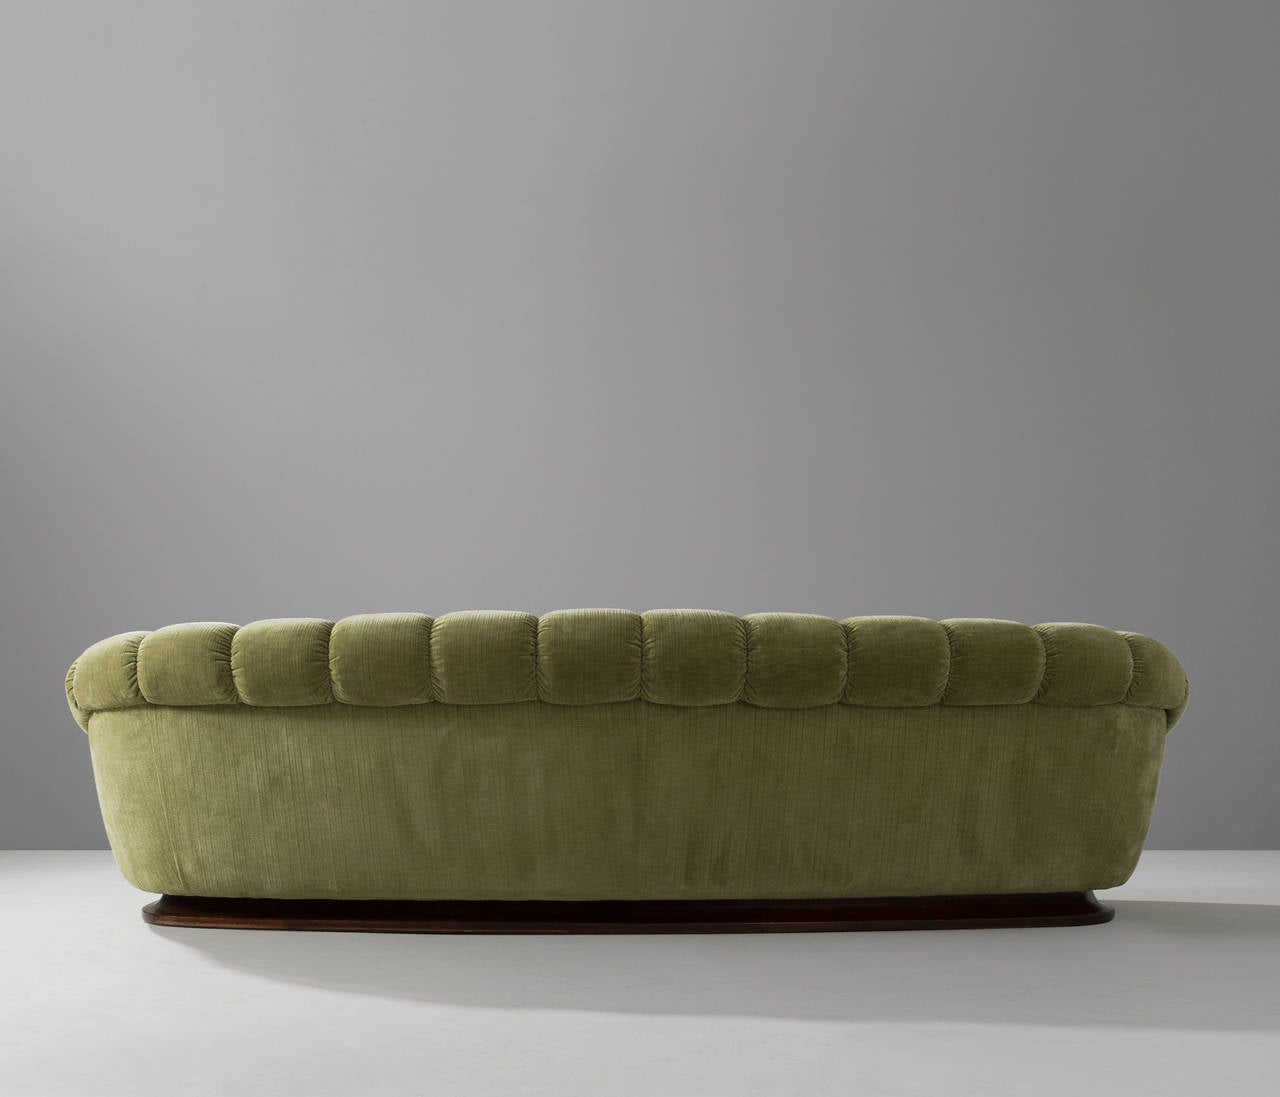 Elegant curved italian sofa with round shapes at 1stdibs for Elegante sofas